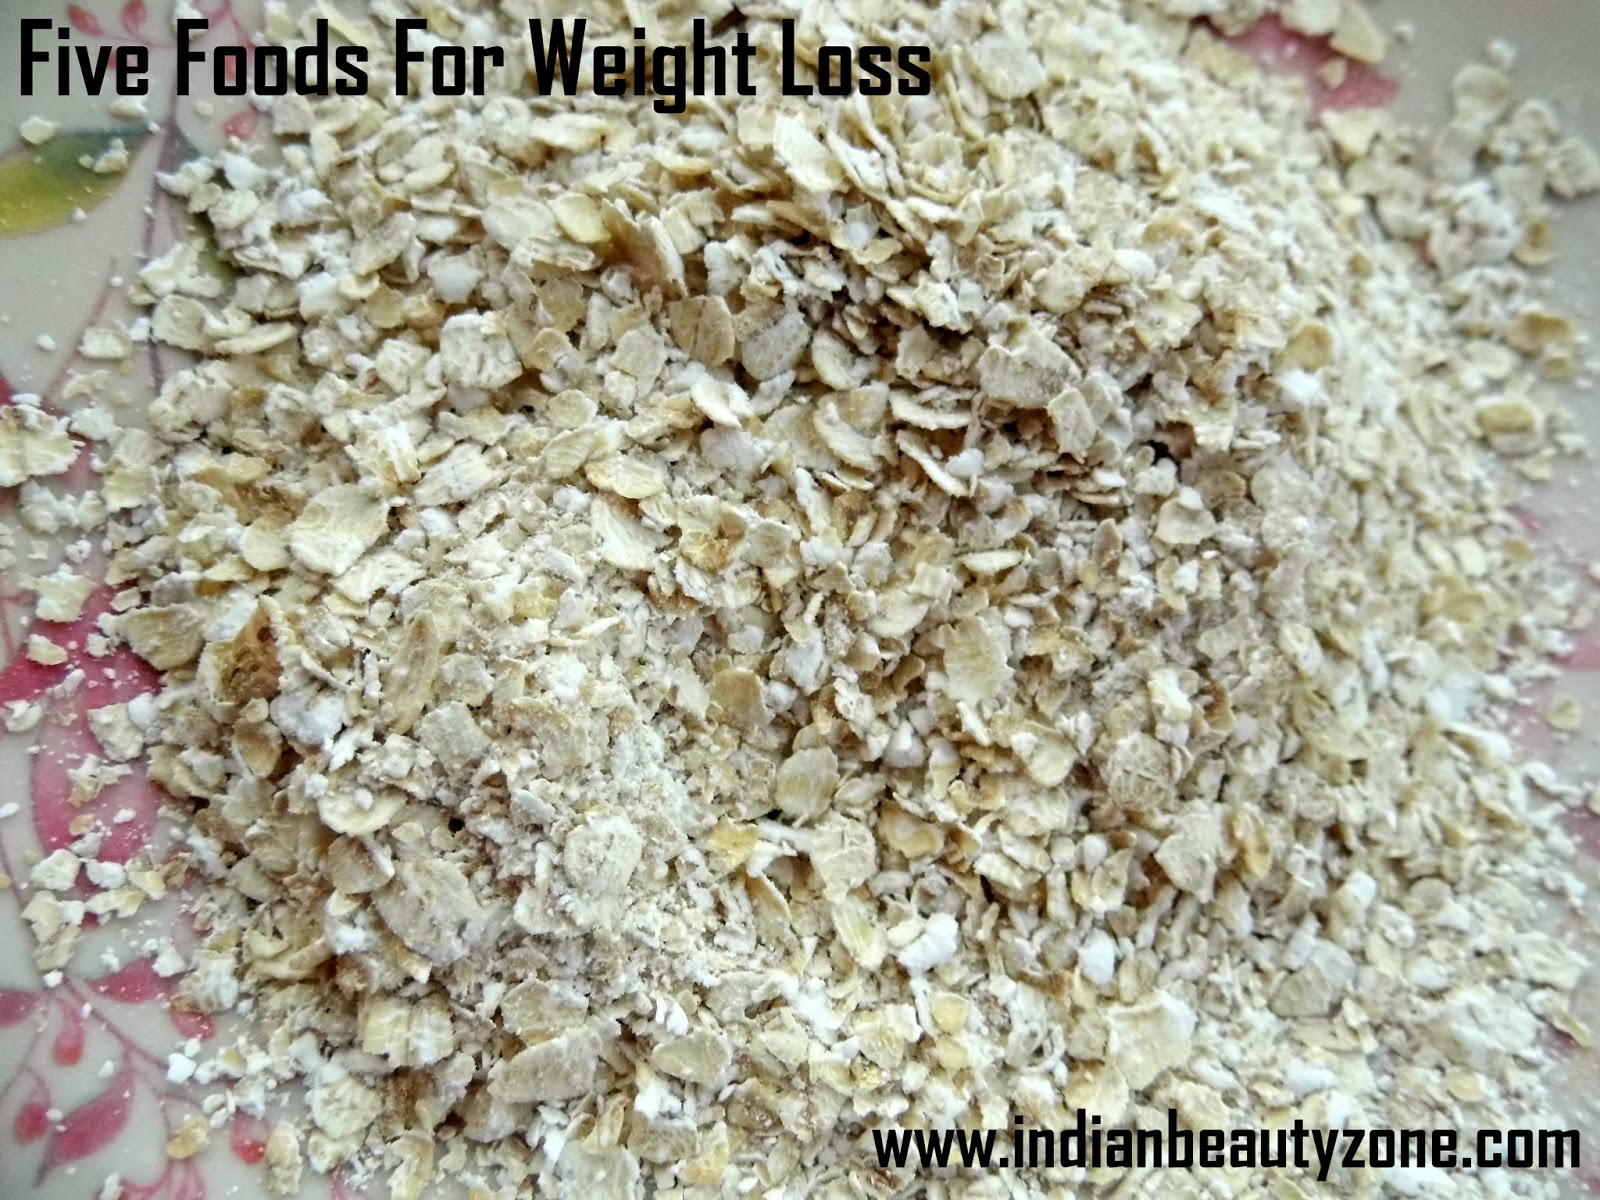 Indian Beauty Zone: Five Foods For Weight Loss